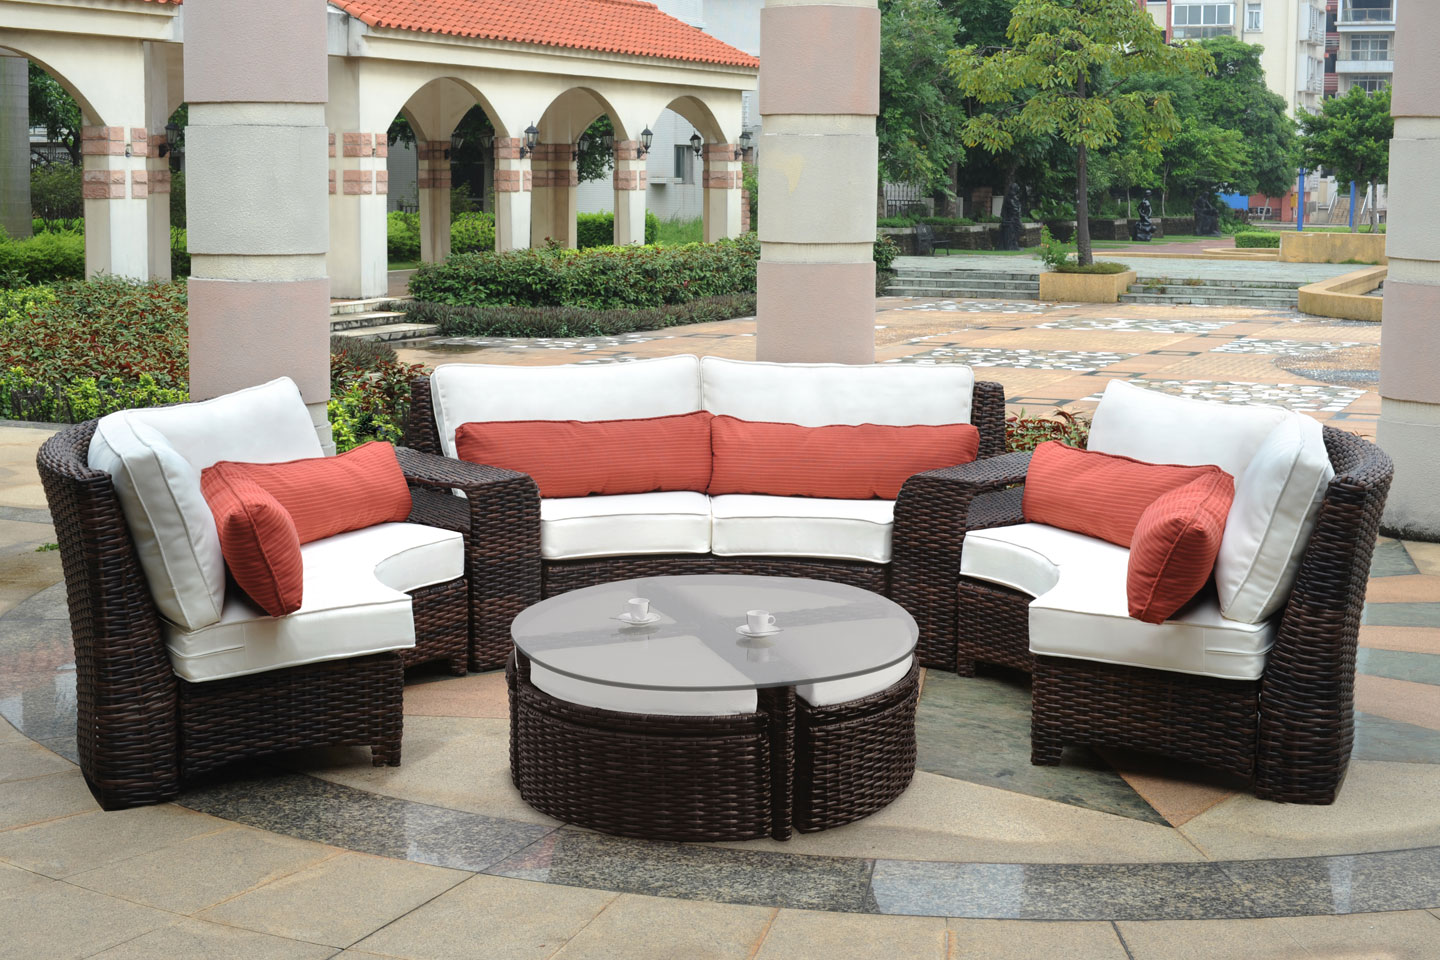 Fiji Curved Outdoor Resin Wicker Round Patio Sectional